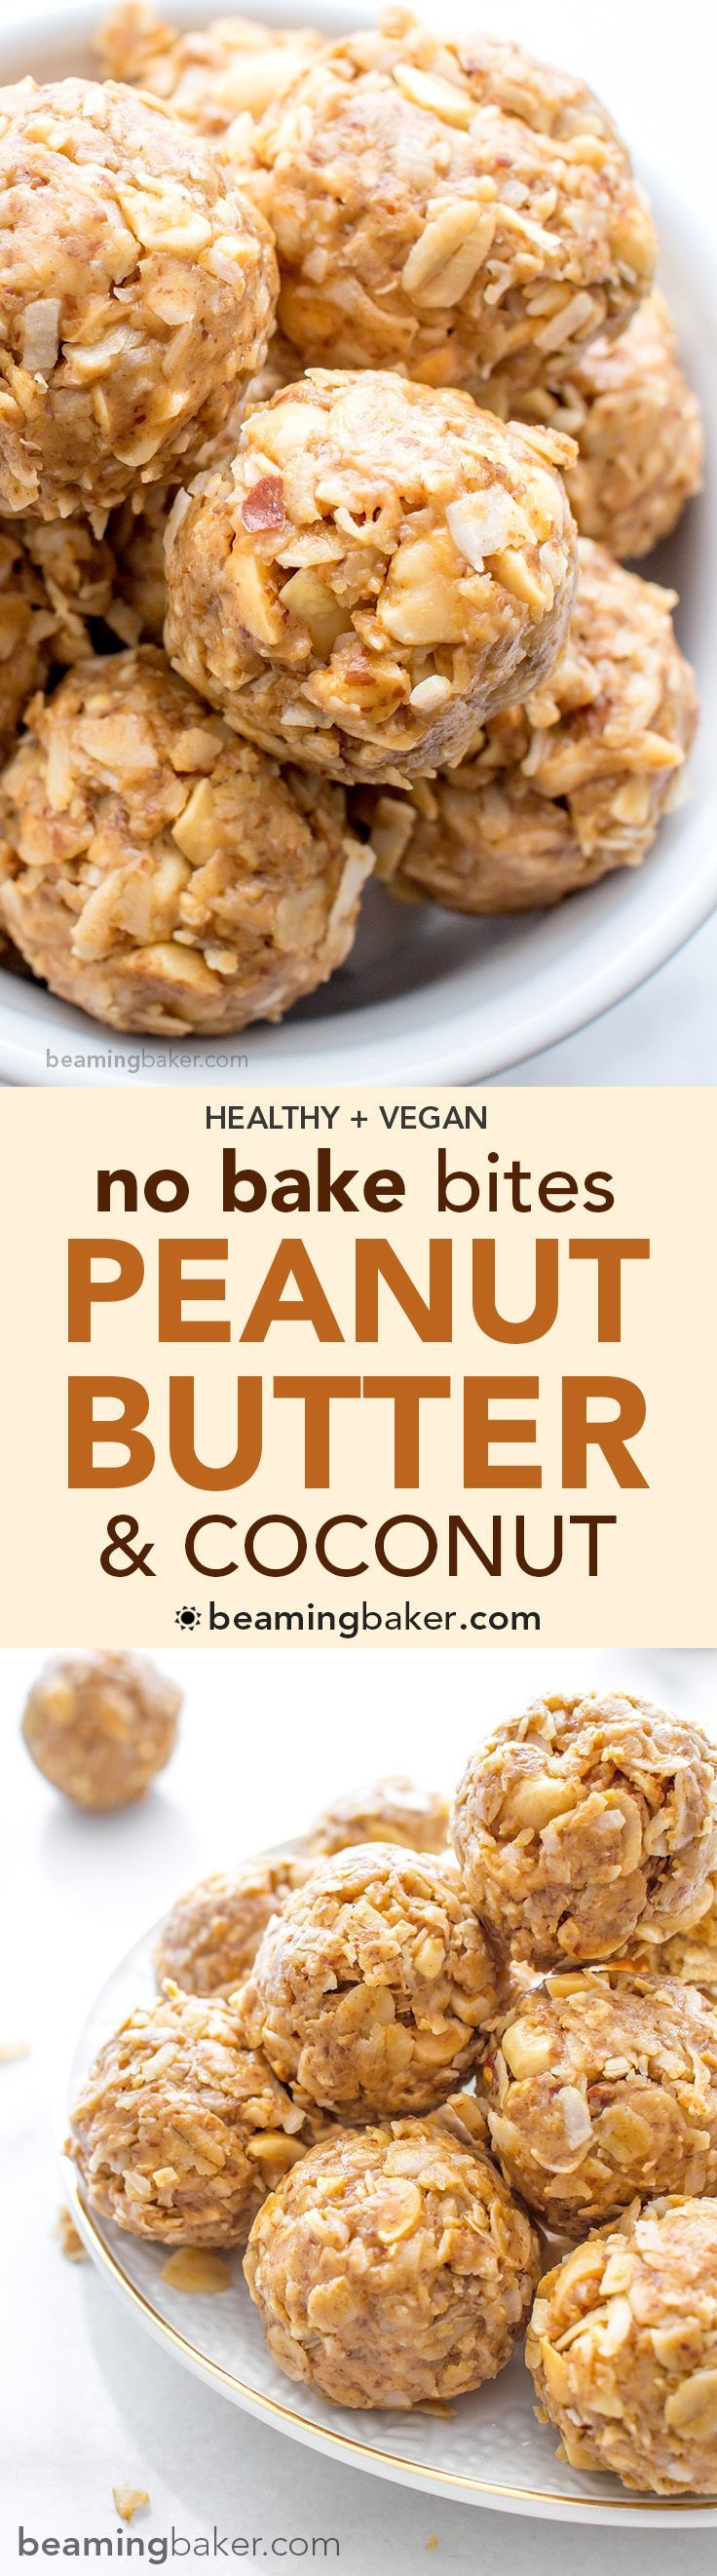 No Bake Peanut Butter Coconut Bites: delicious, easy to make, energy-boosting and super-filling. Made of just 6 simple ingredients, vegan, gluten free and healthy. :sunny:︎ BEAMINGBAKER.COM #vegan #glutenfree